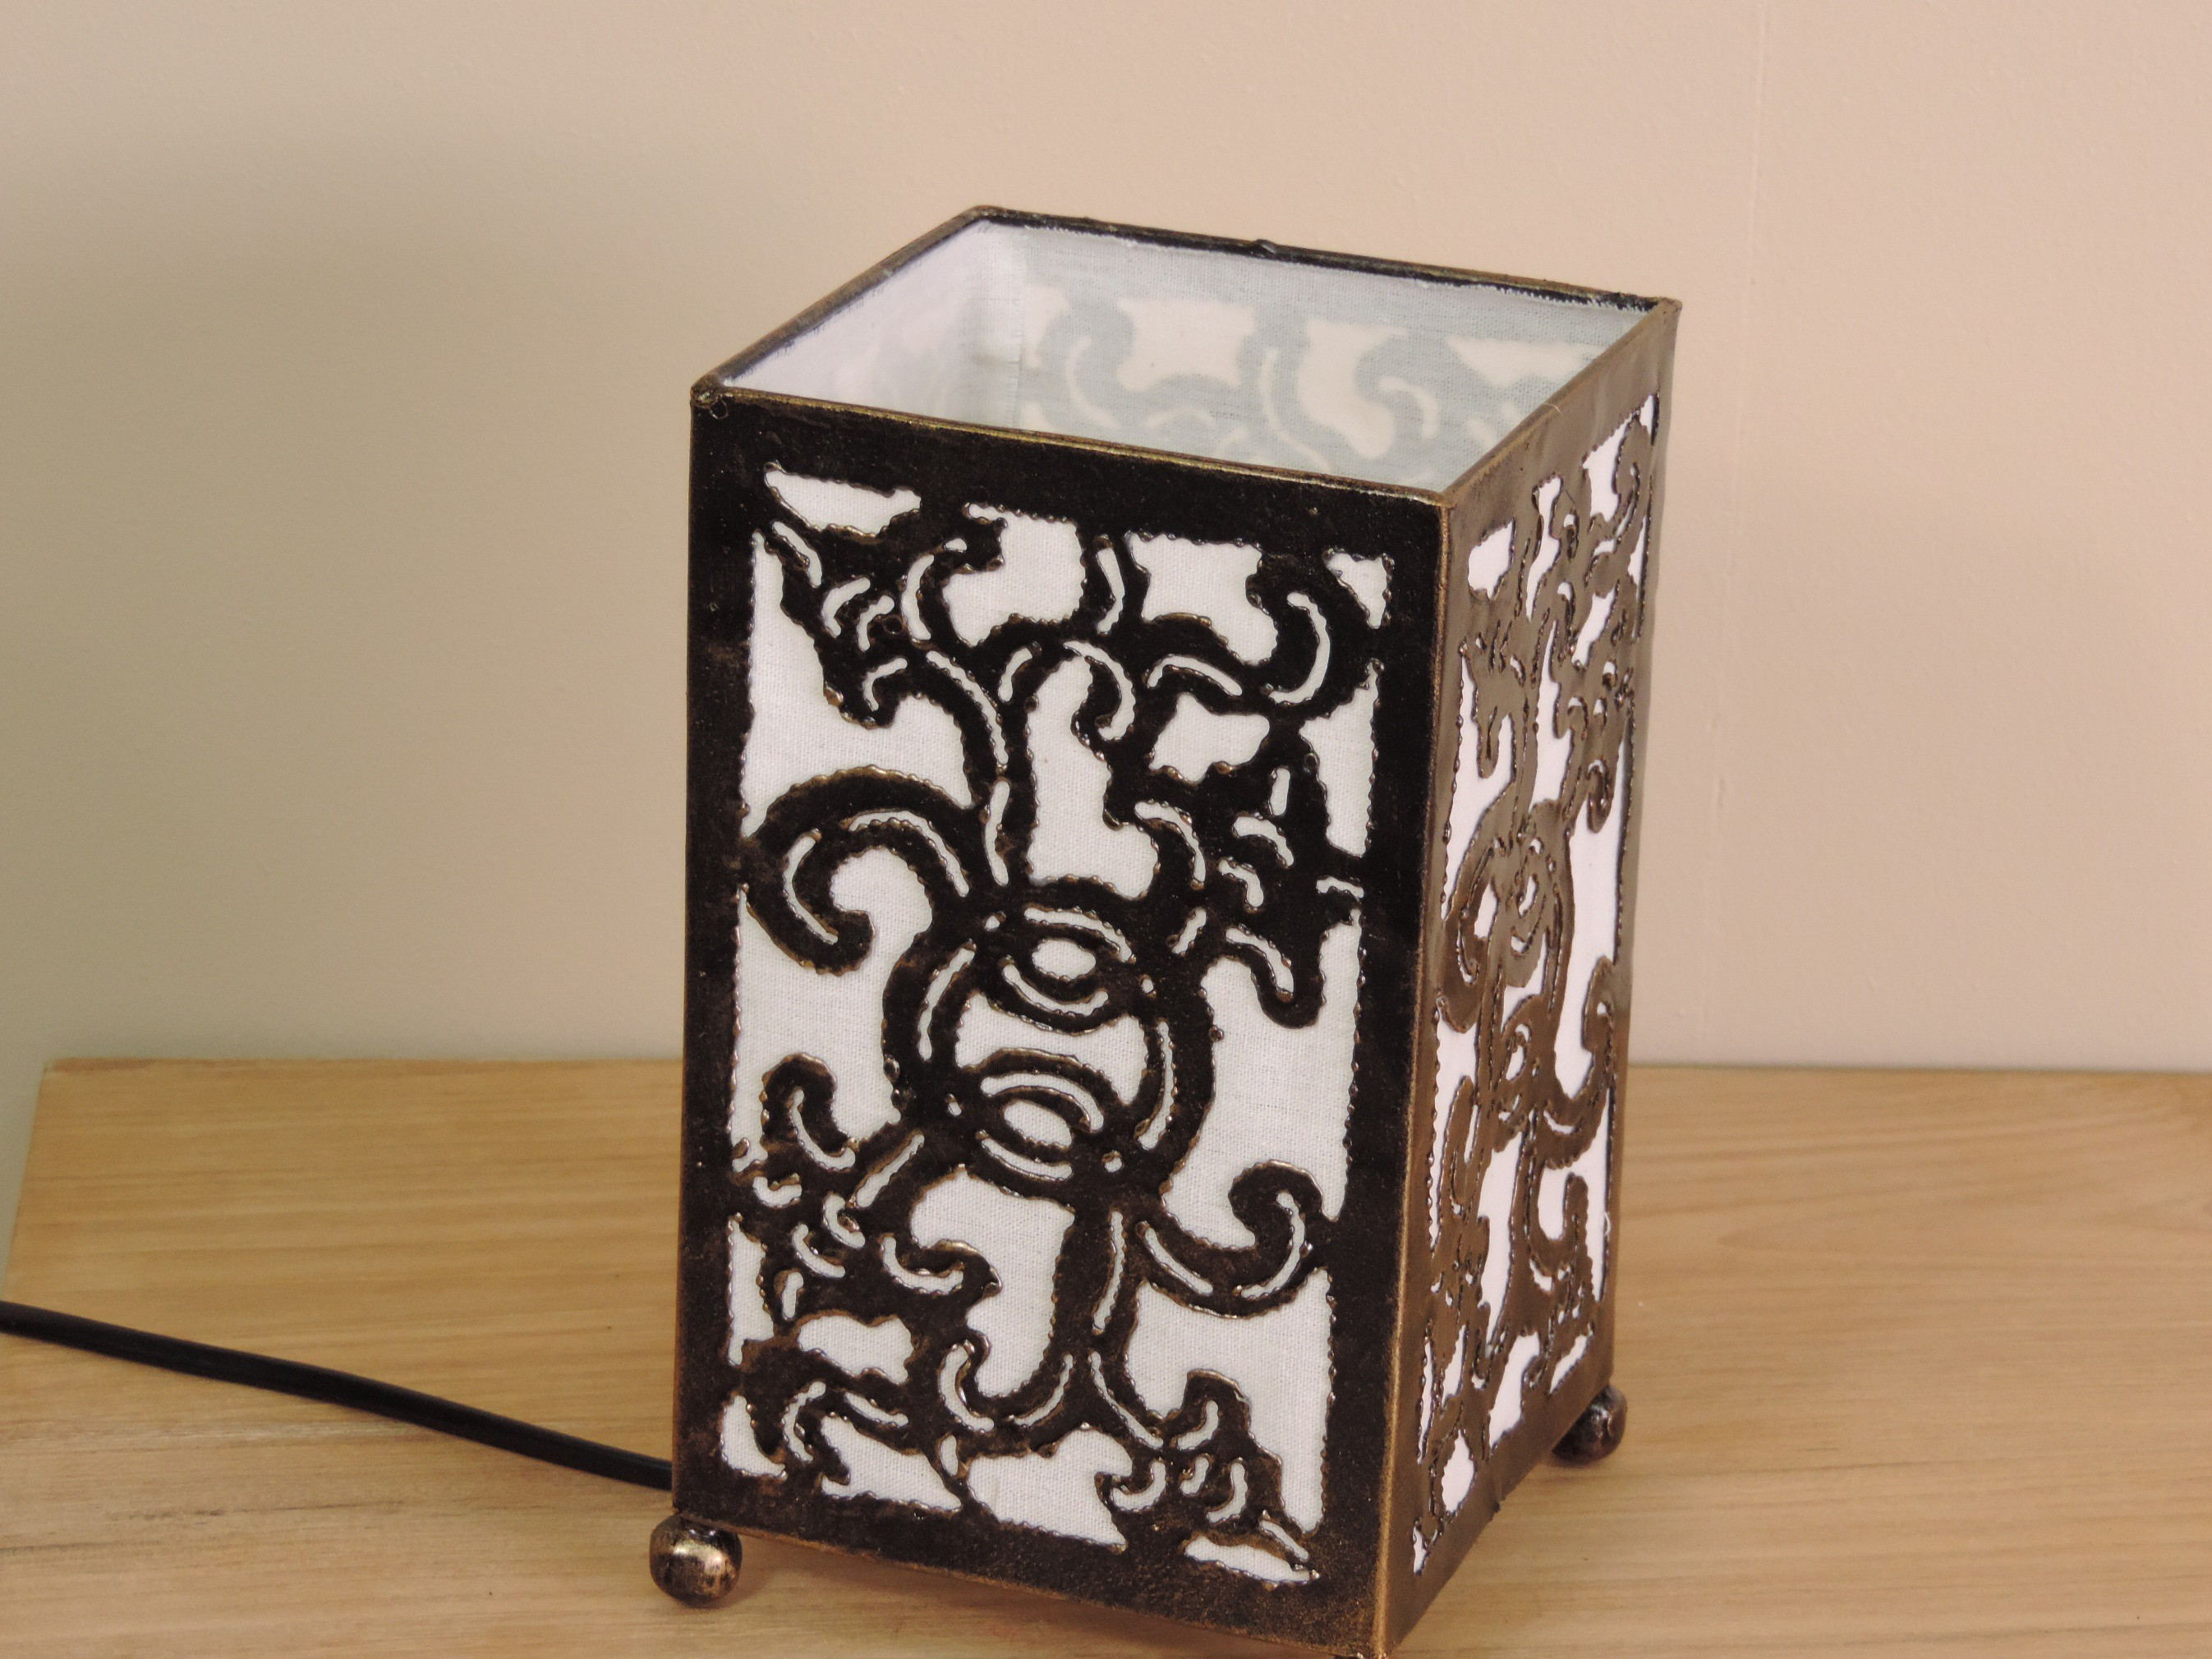 neuf lampe en fer forg rectangle blanc 12 cm hauteur 20 cm ebay. Black Bedroom Furniture Sets. Home Design Ideas